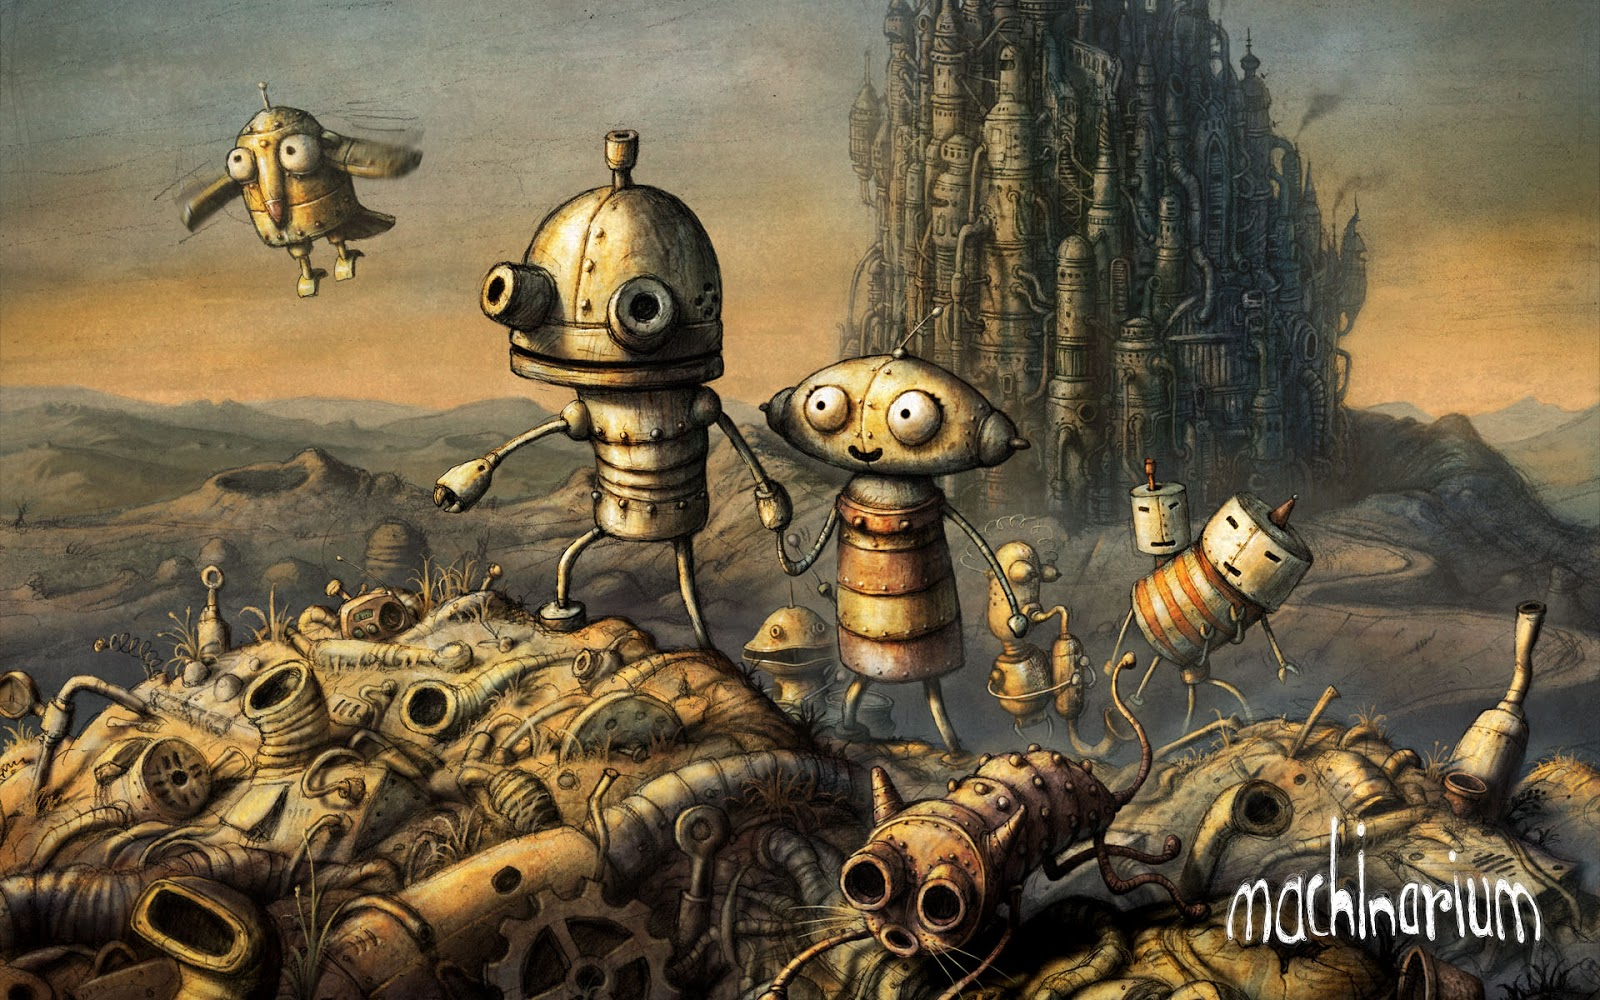 game petualangan android machinarium